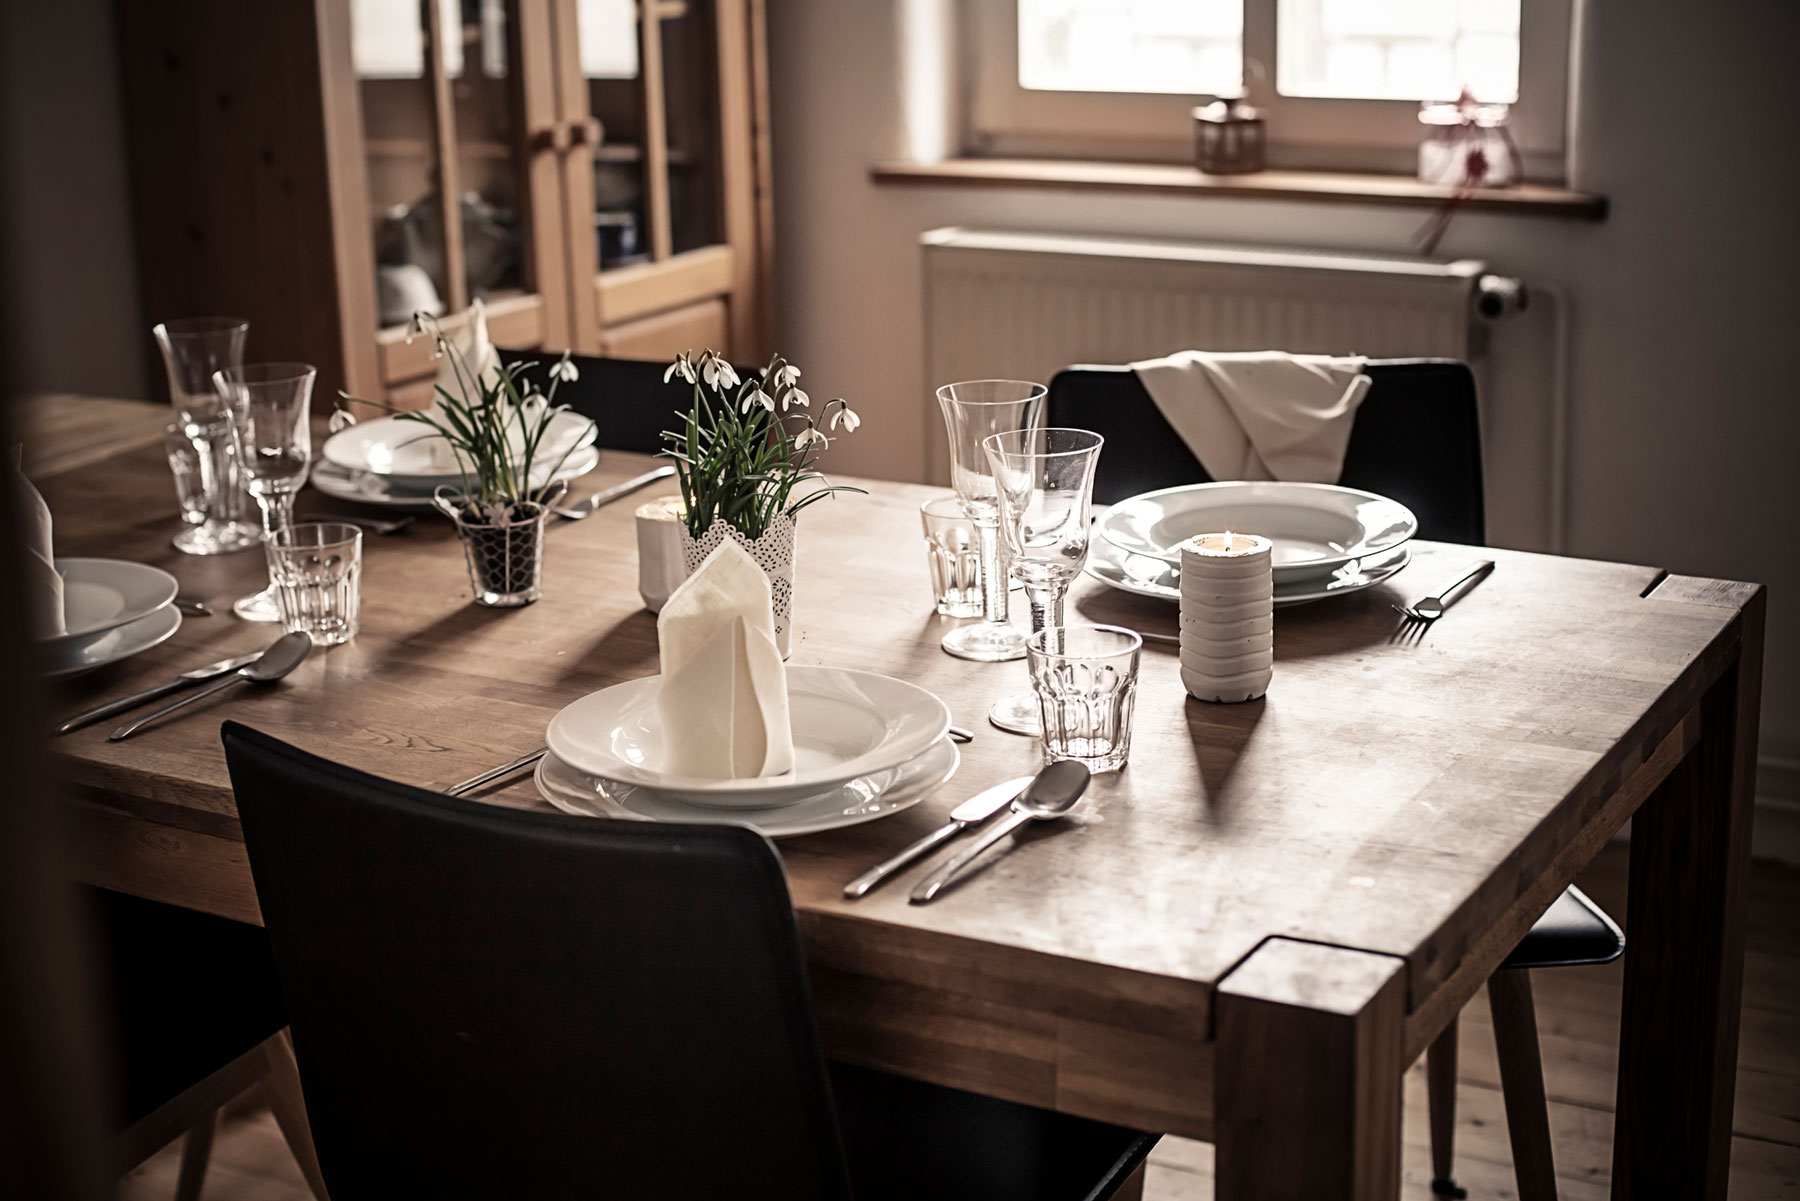 9 Things in Your Dining Room You Should Ditch ASAP